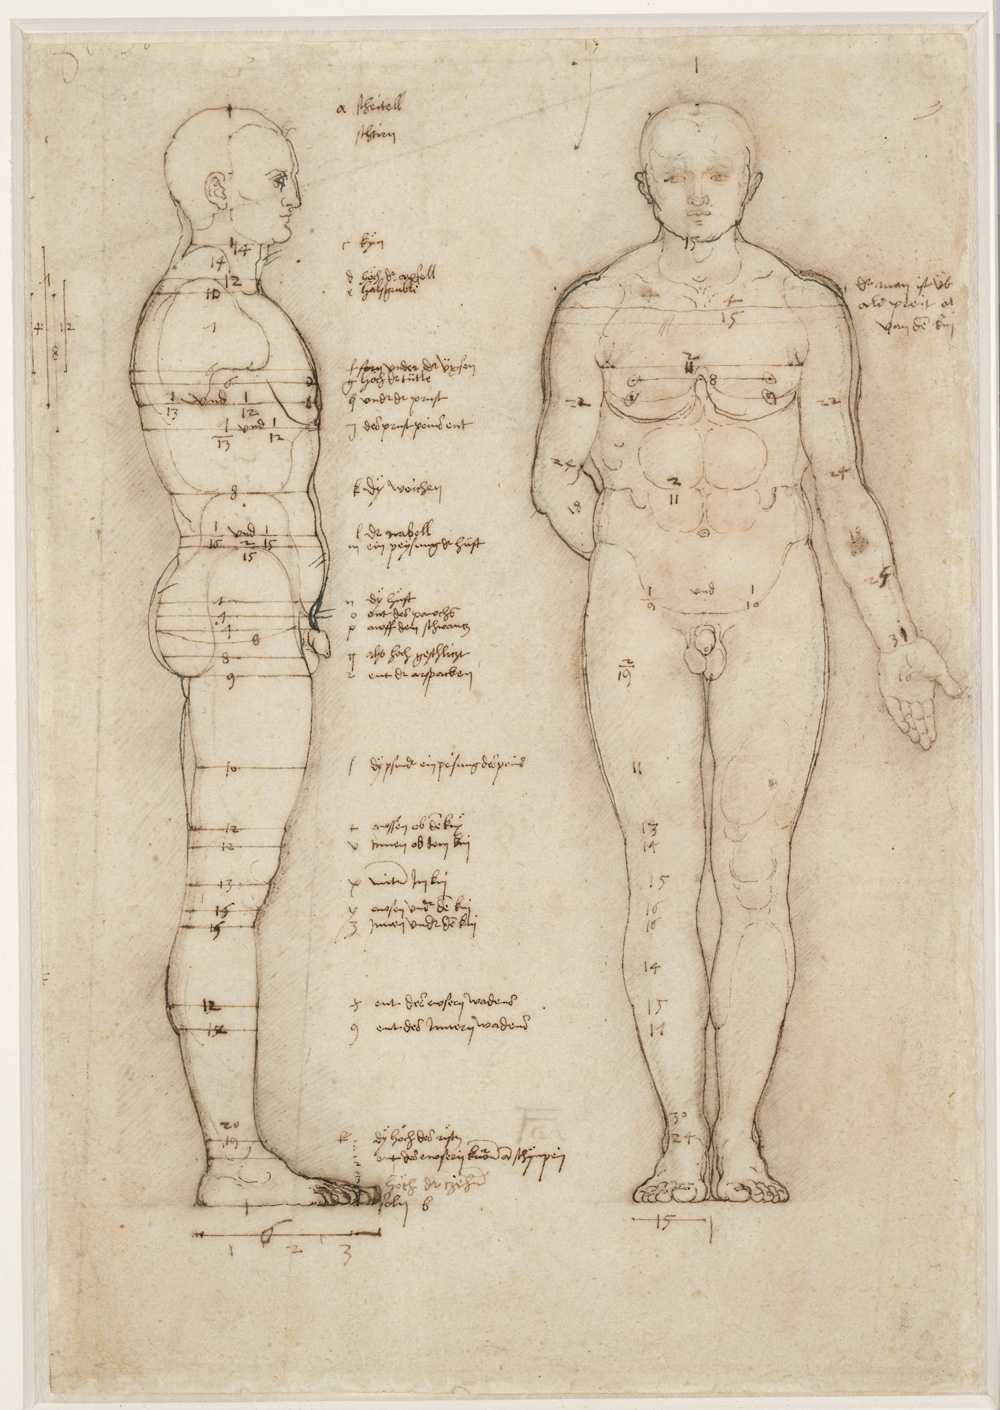 Albrecht Dürer's Sketches on Human Proportions